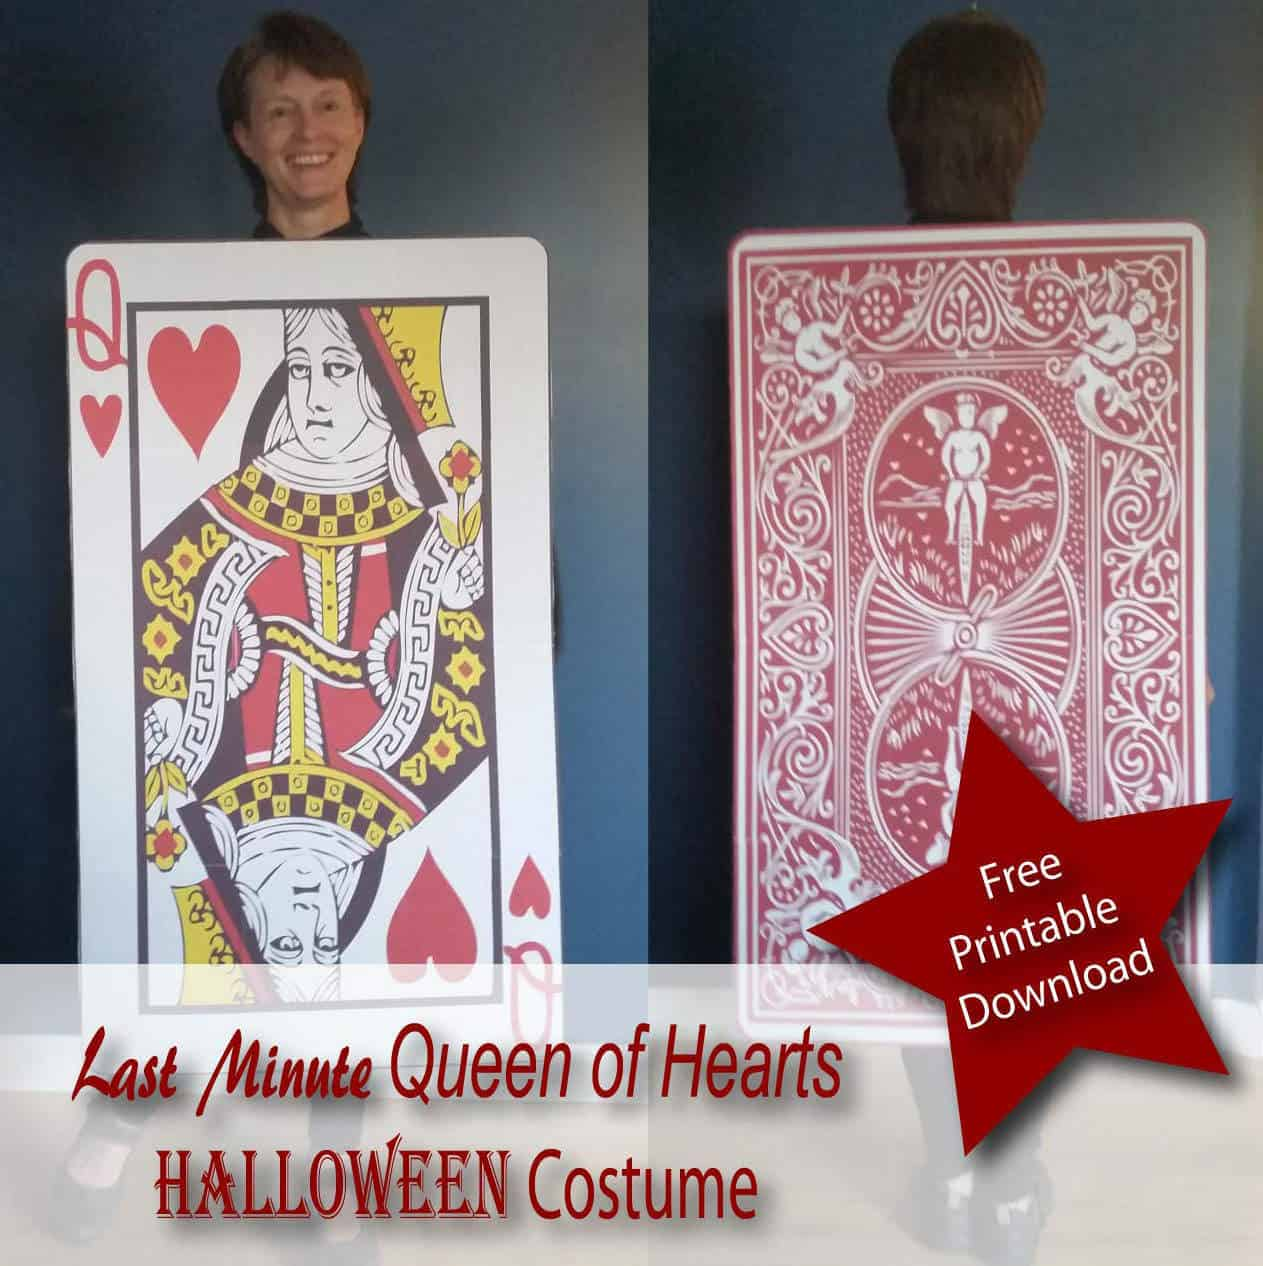 Last minute queen of hearts card costume upcycled free printable last minute queen of hearts card costume upcycled free printable recyclart solutioingenieria Gallery